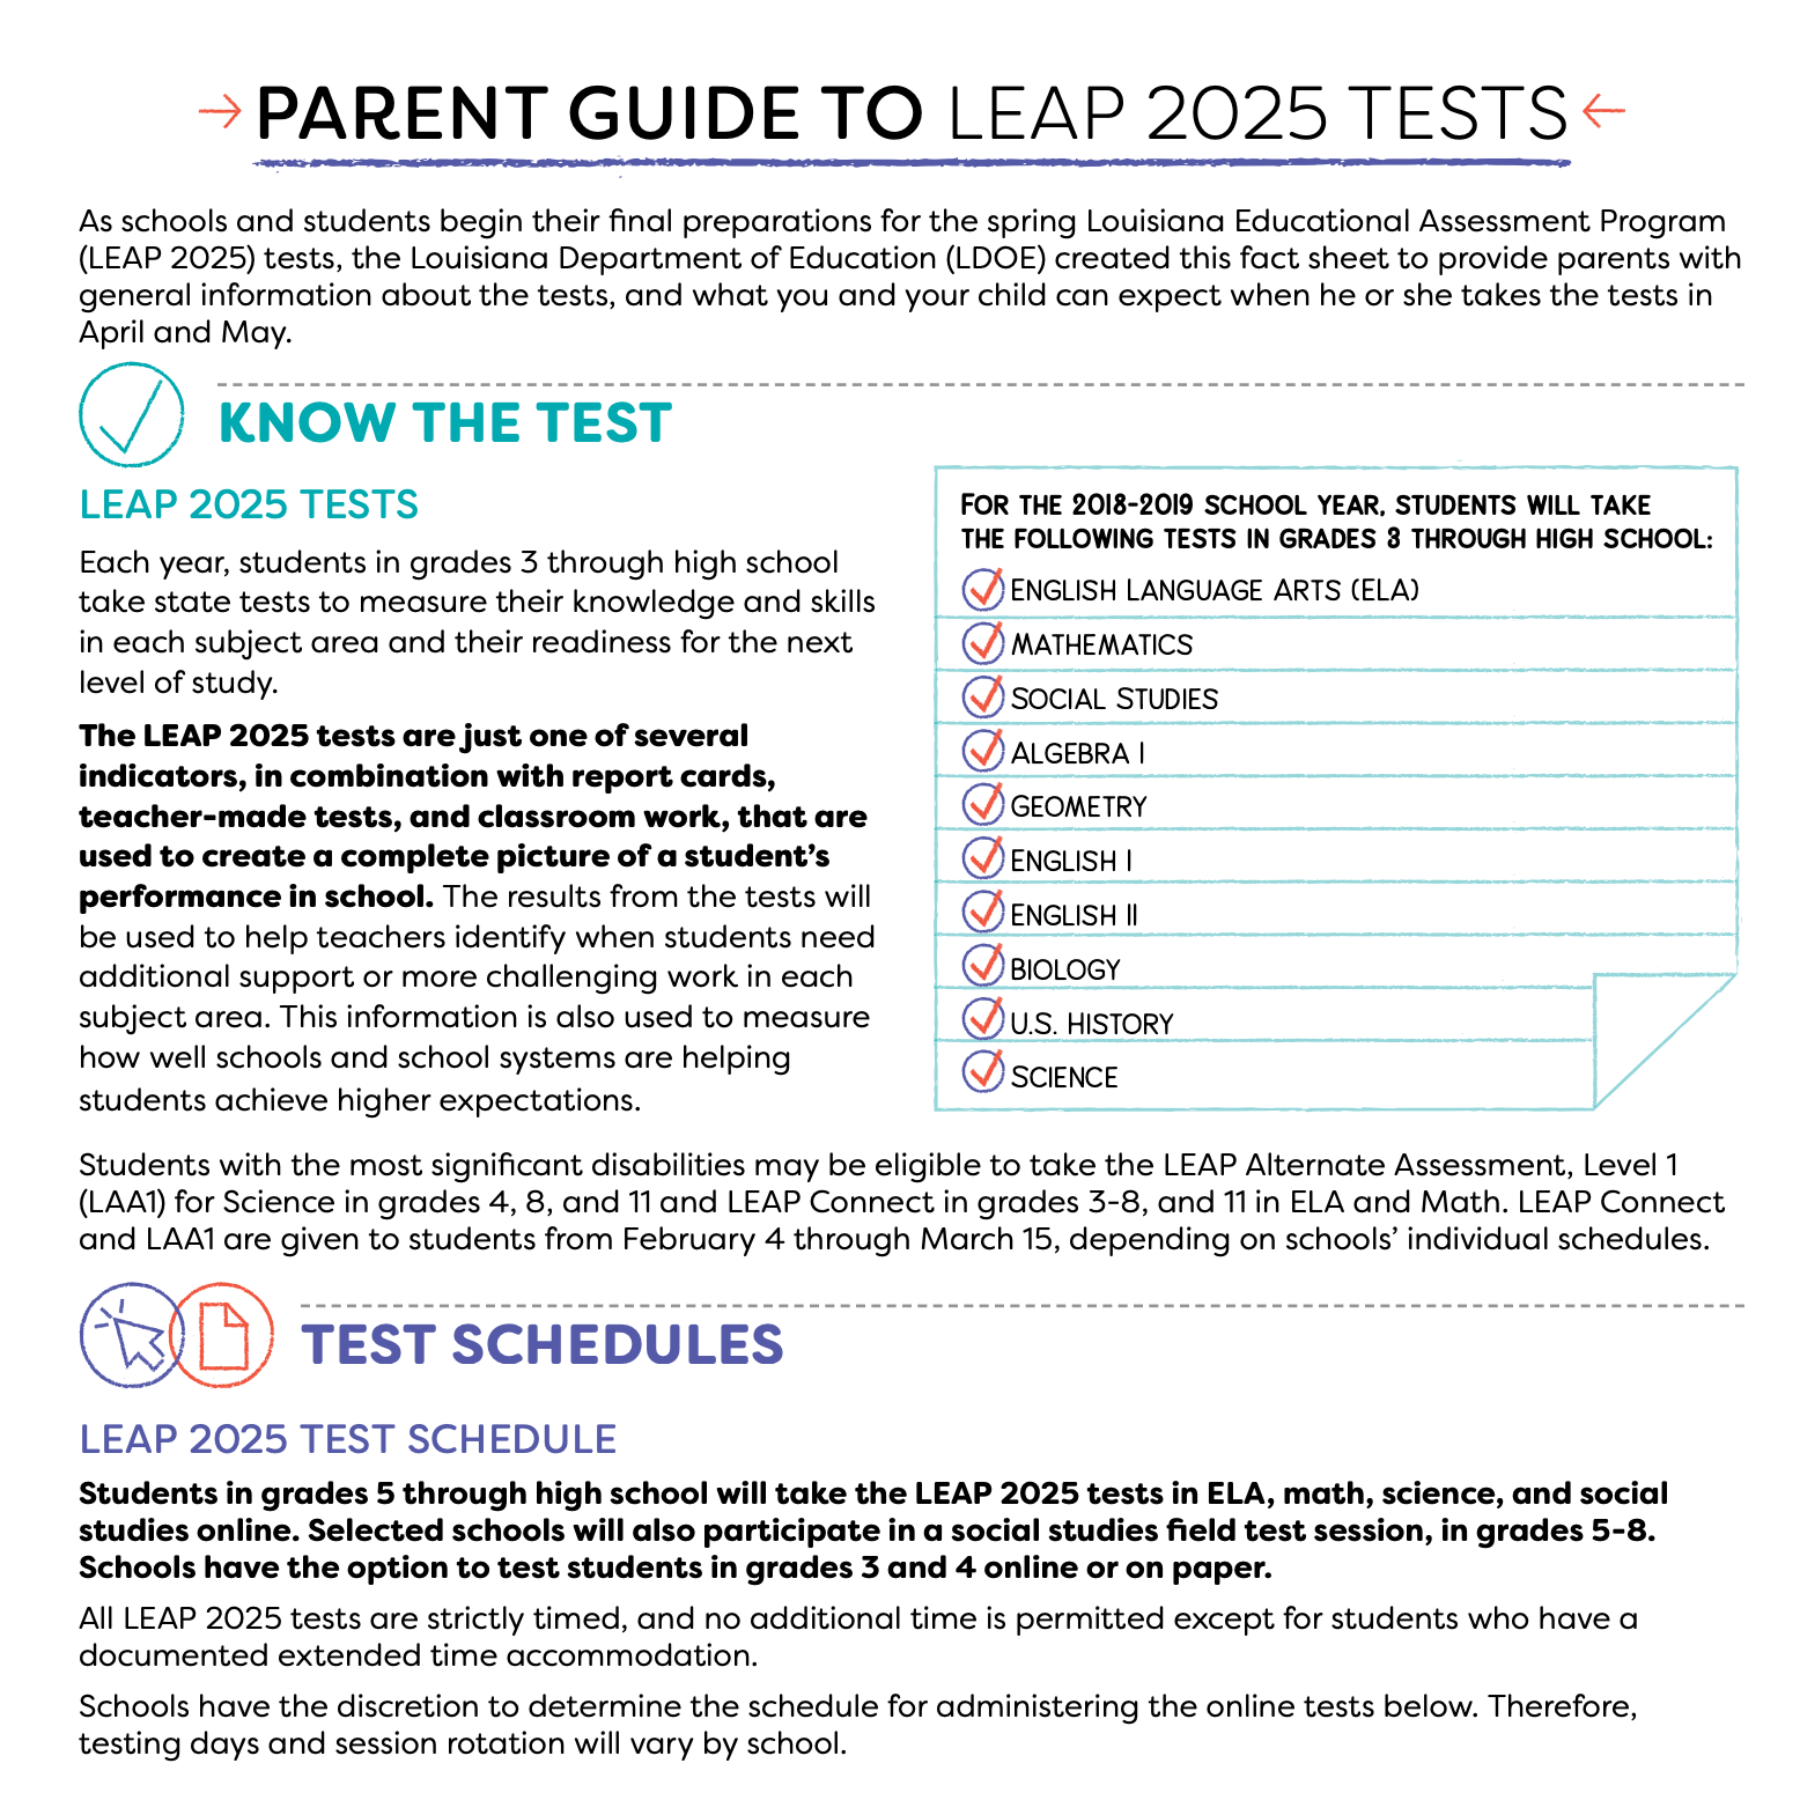 parent guide to LEAP